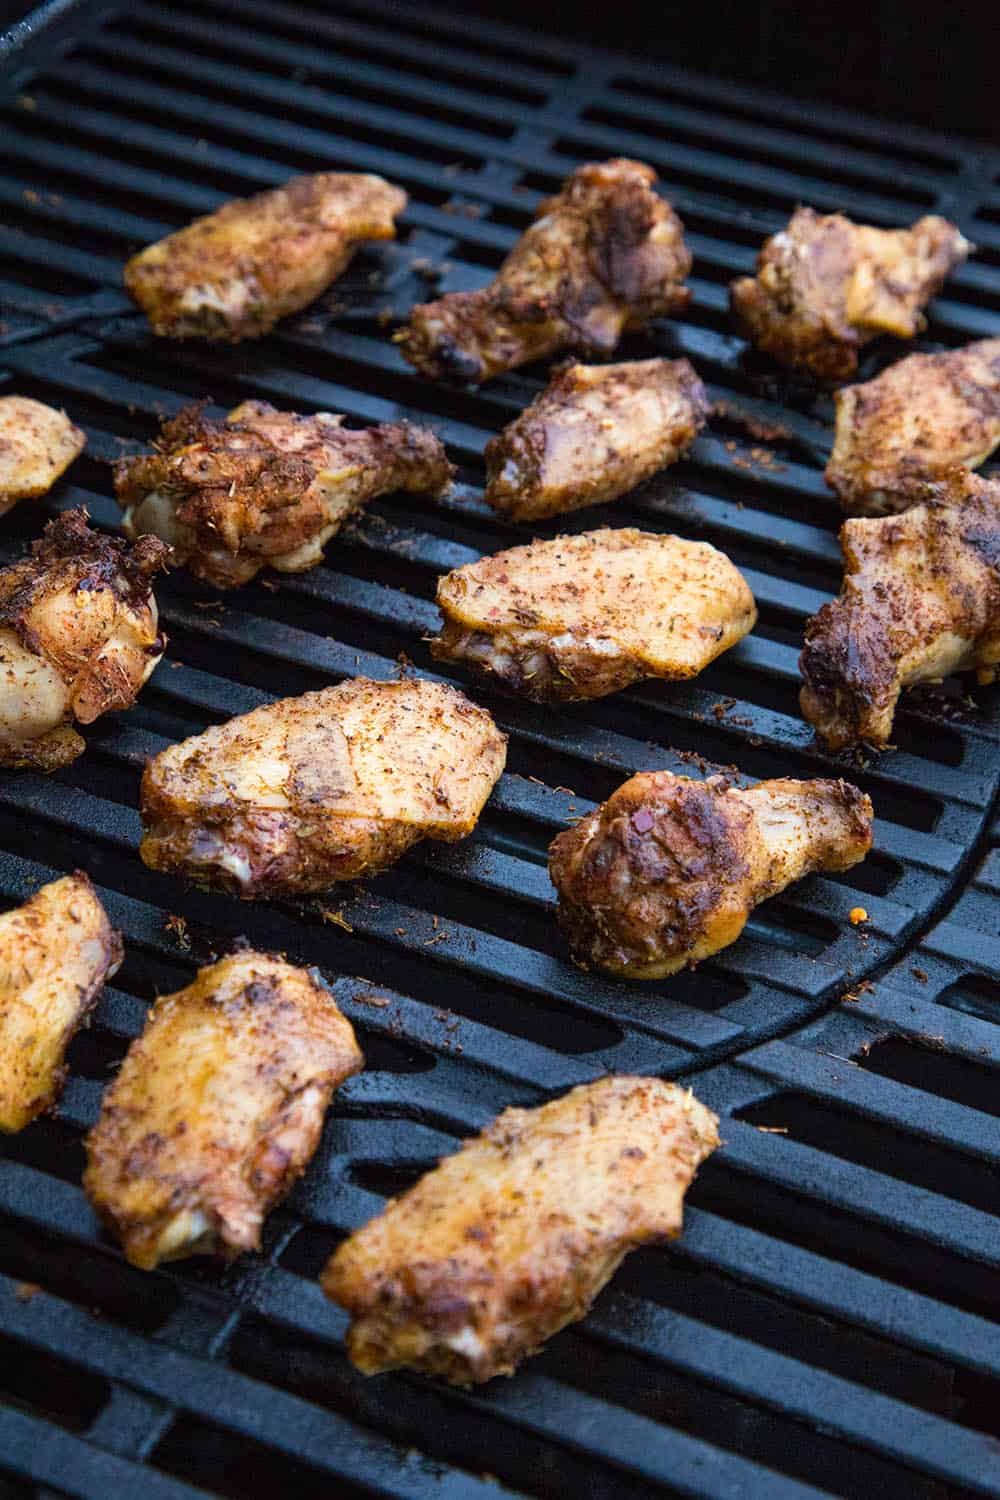 Grilled Jerk Chicken Wings on the grill